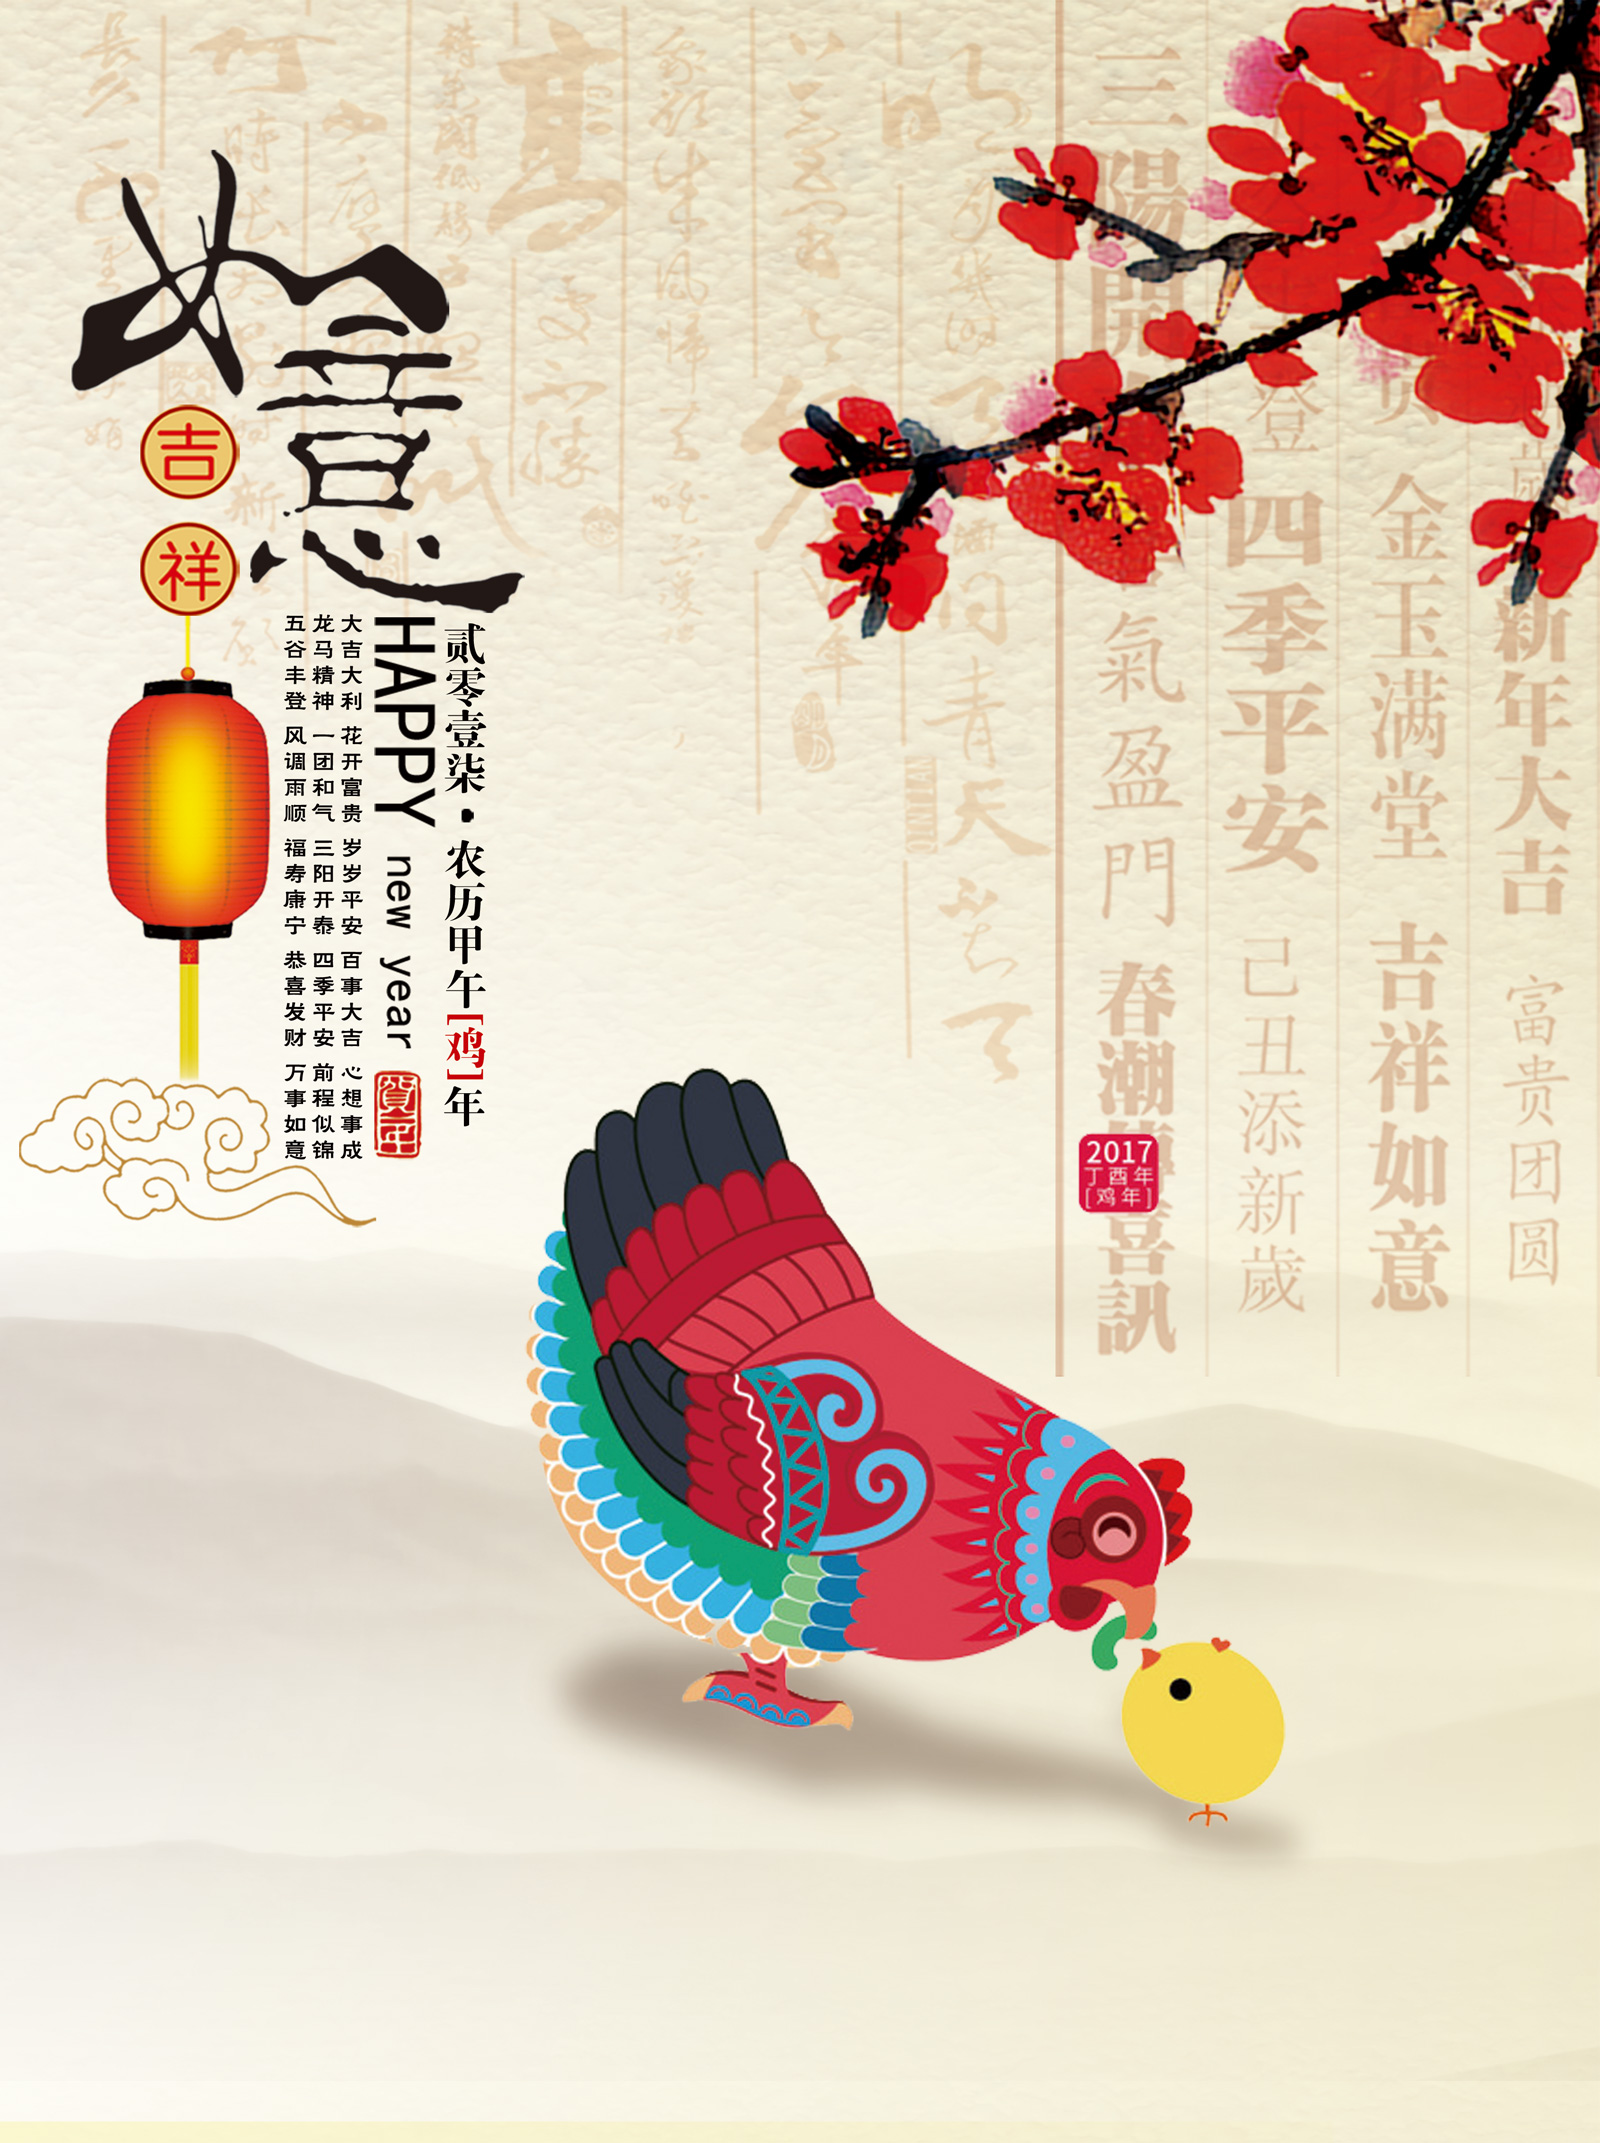 chinesefontdesign.com 2017 03 16 10 34 57 The Chinese New Year poster design reference   PSD File Download